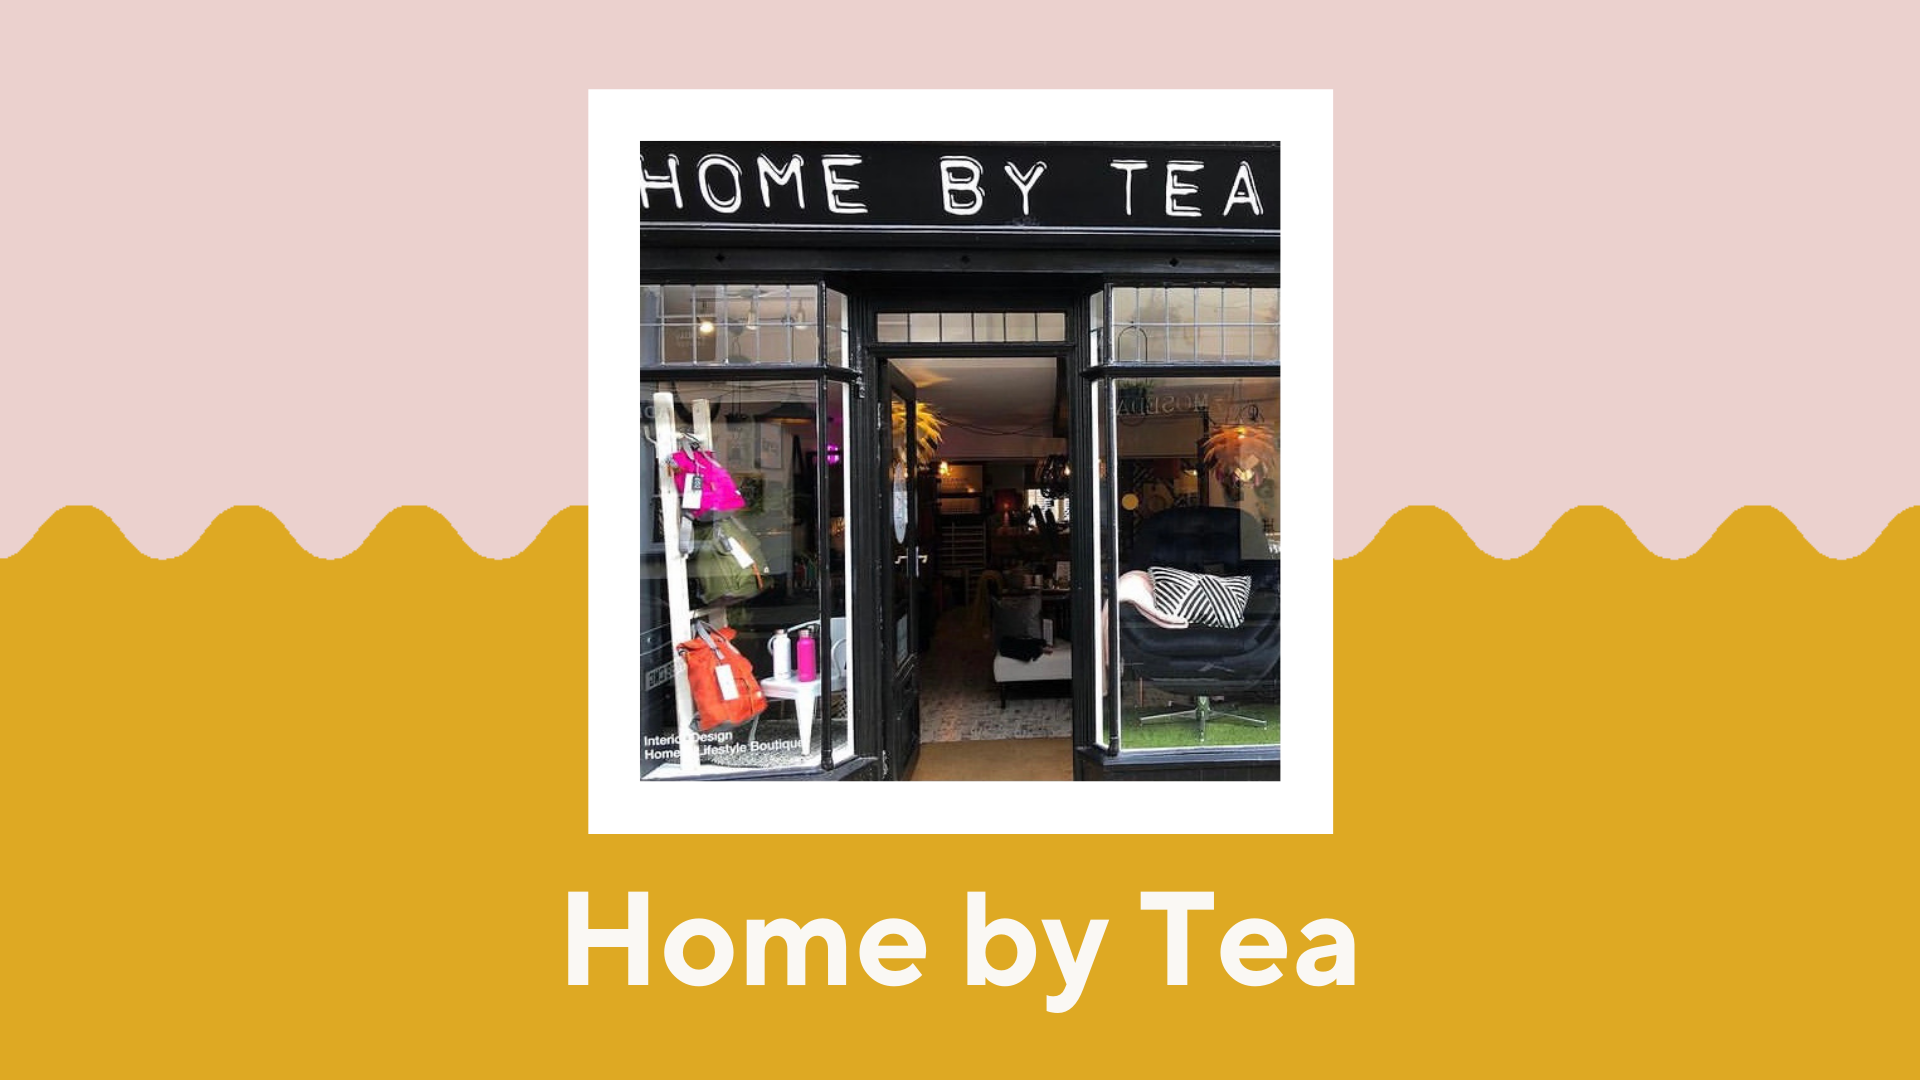 Home by Tea